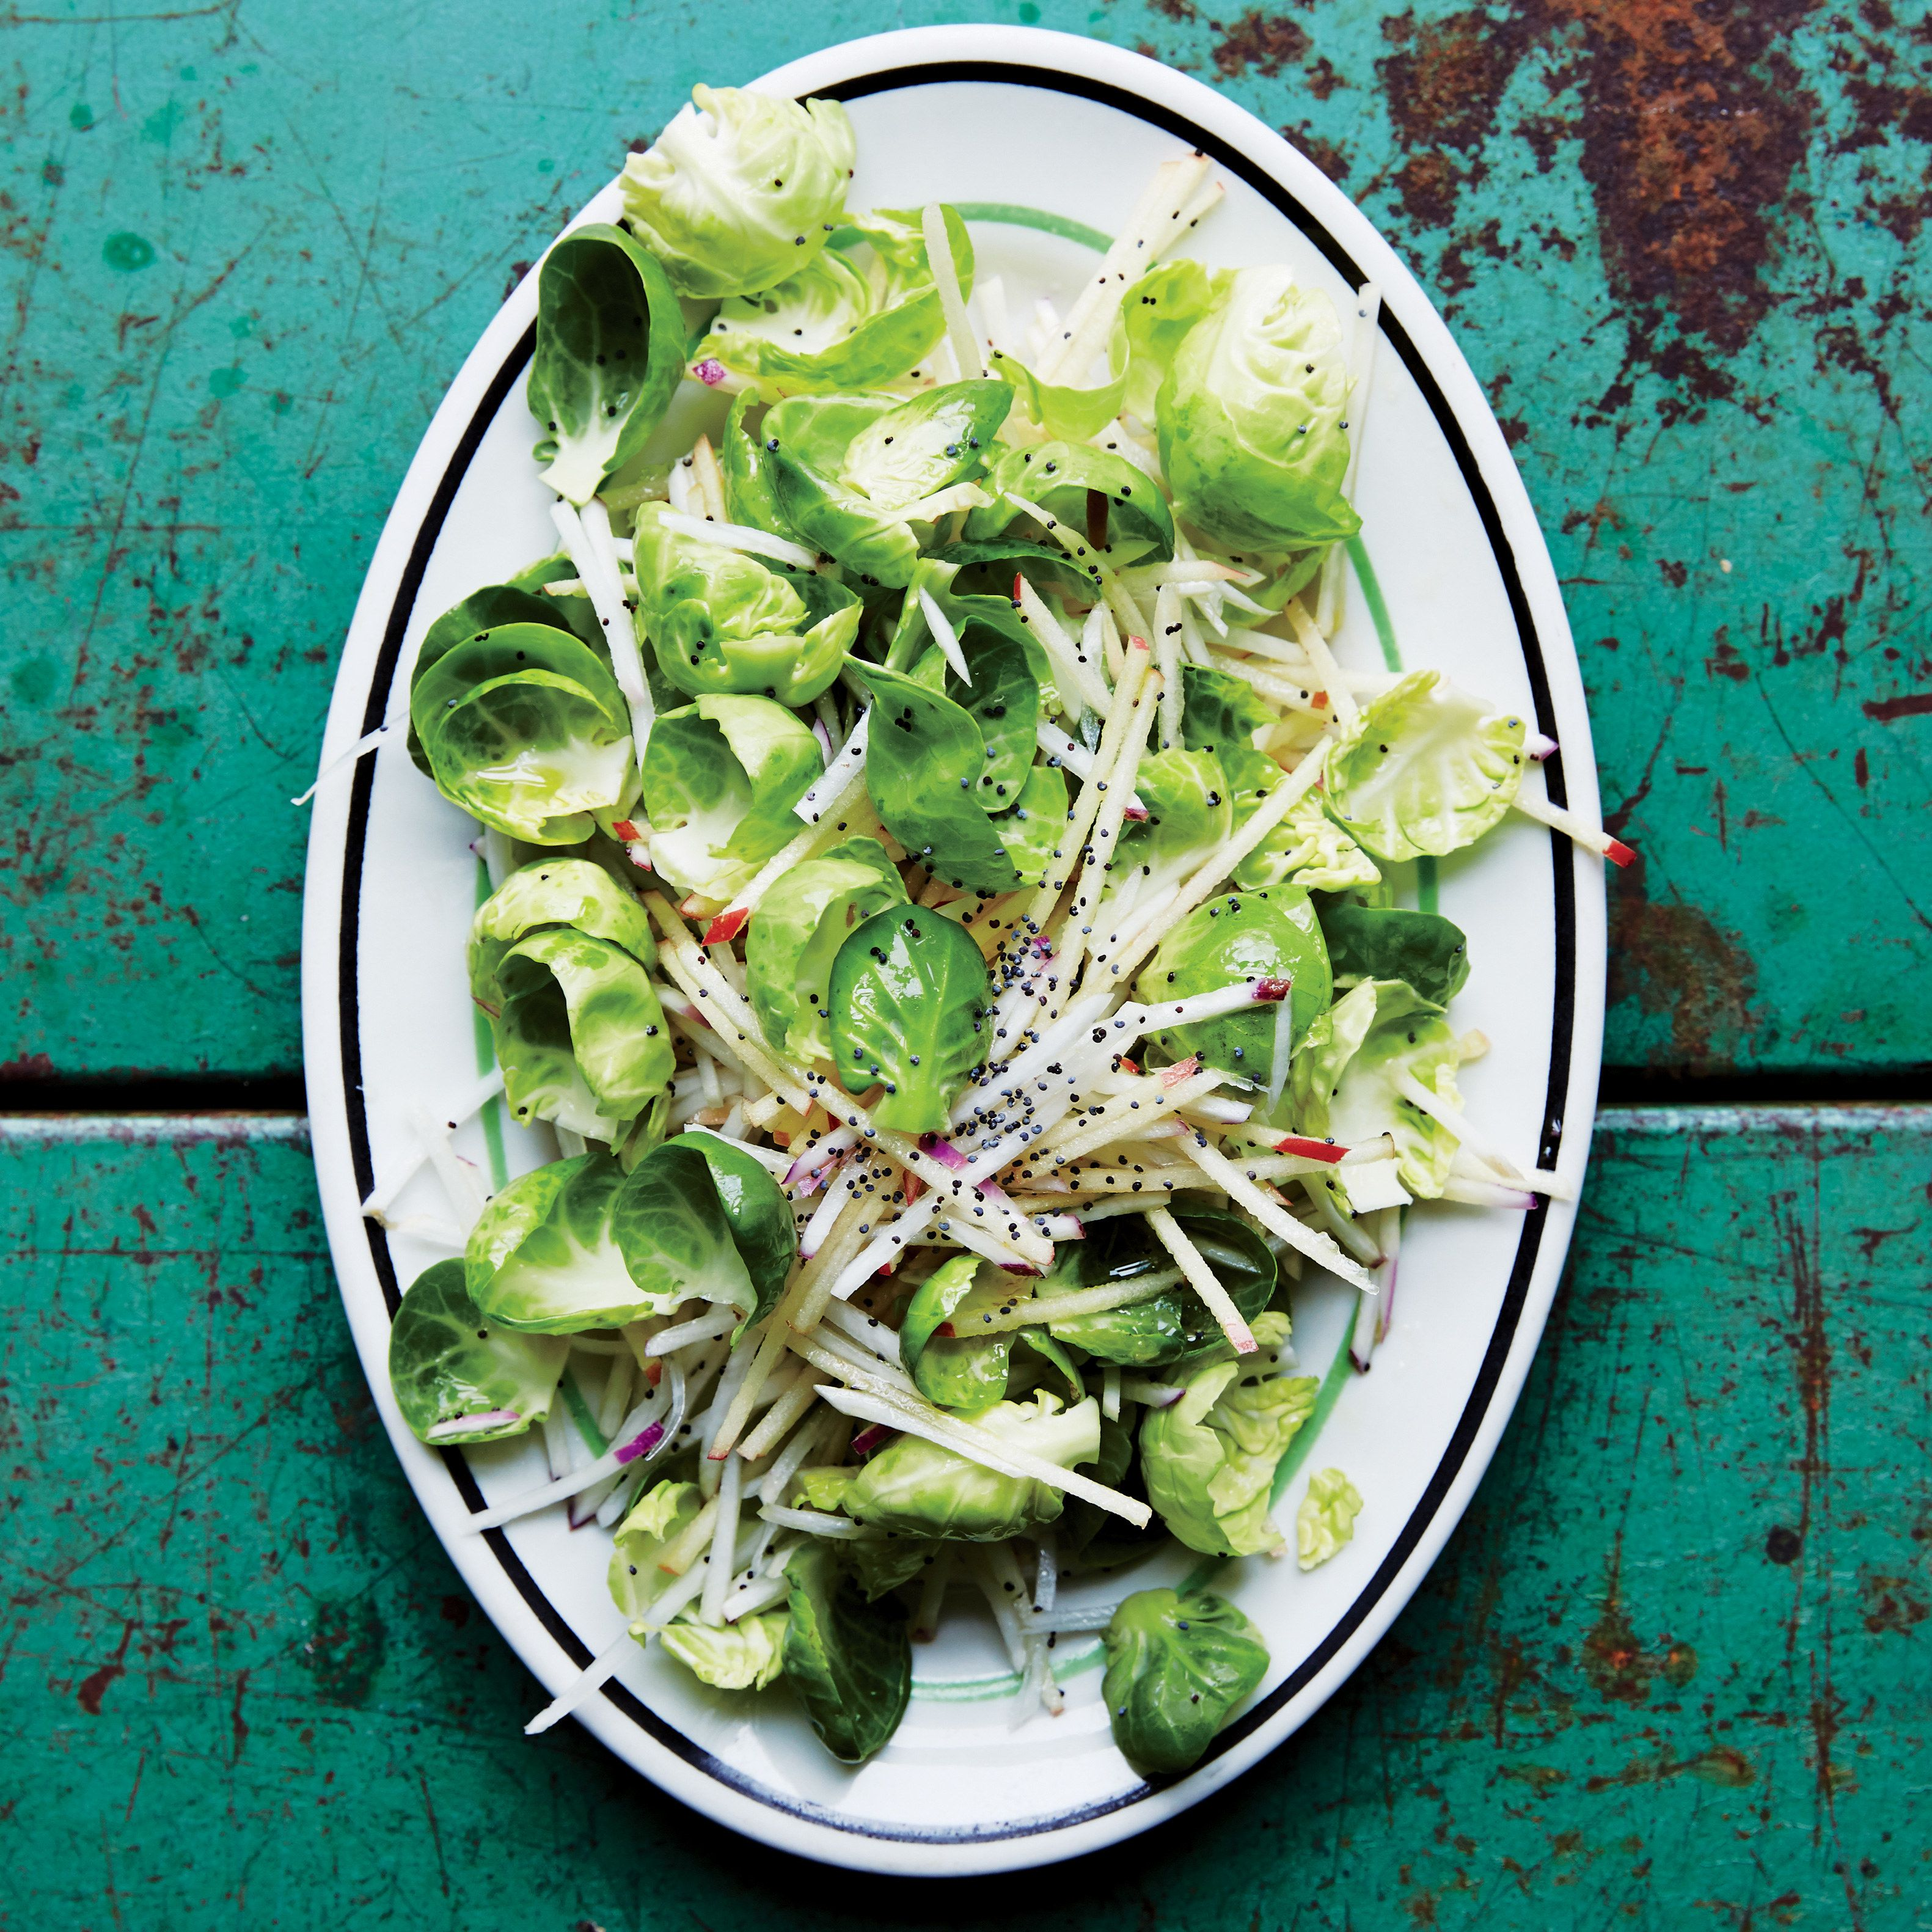 Crunchy turnip apple and brussels sprout slaw recipe